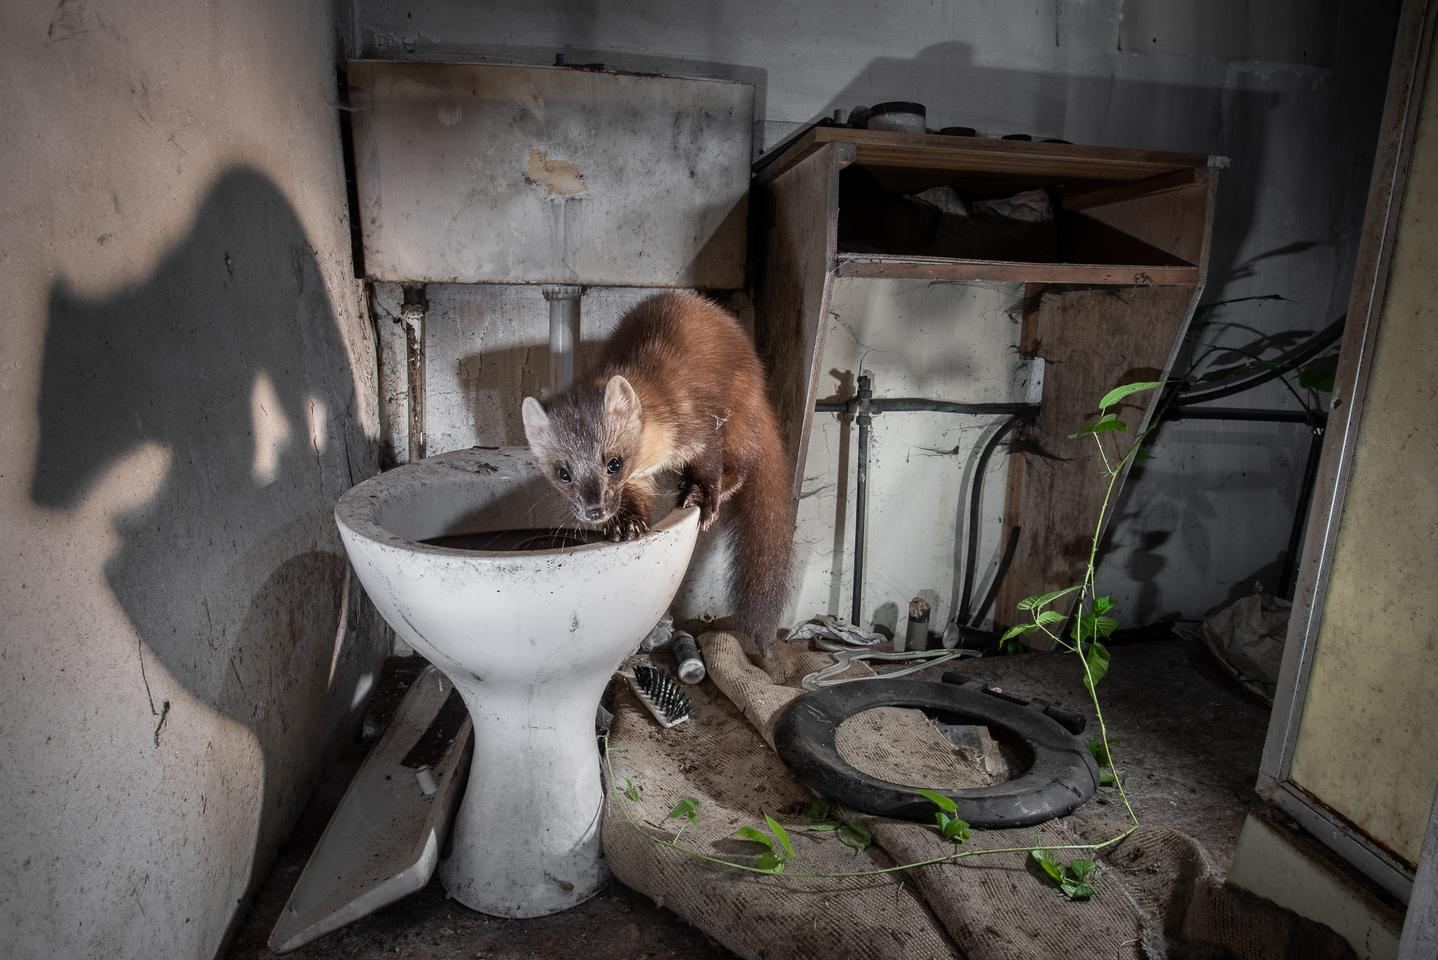 A pine marten investigates a toilet in an abandoned cottage in the Scottish Highlands